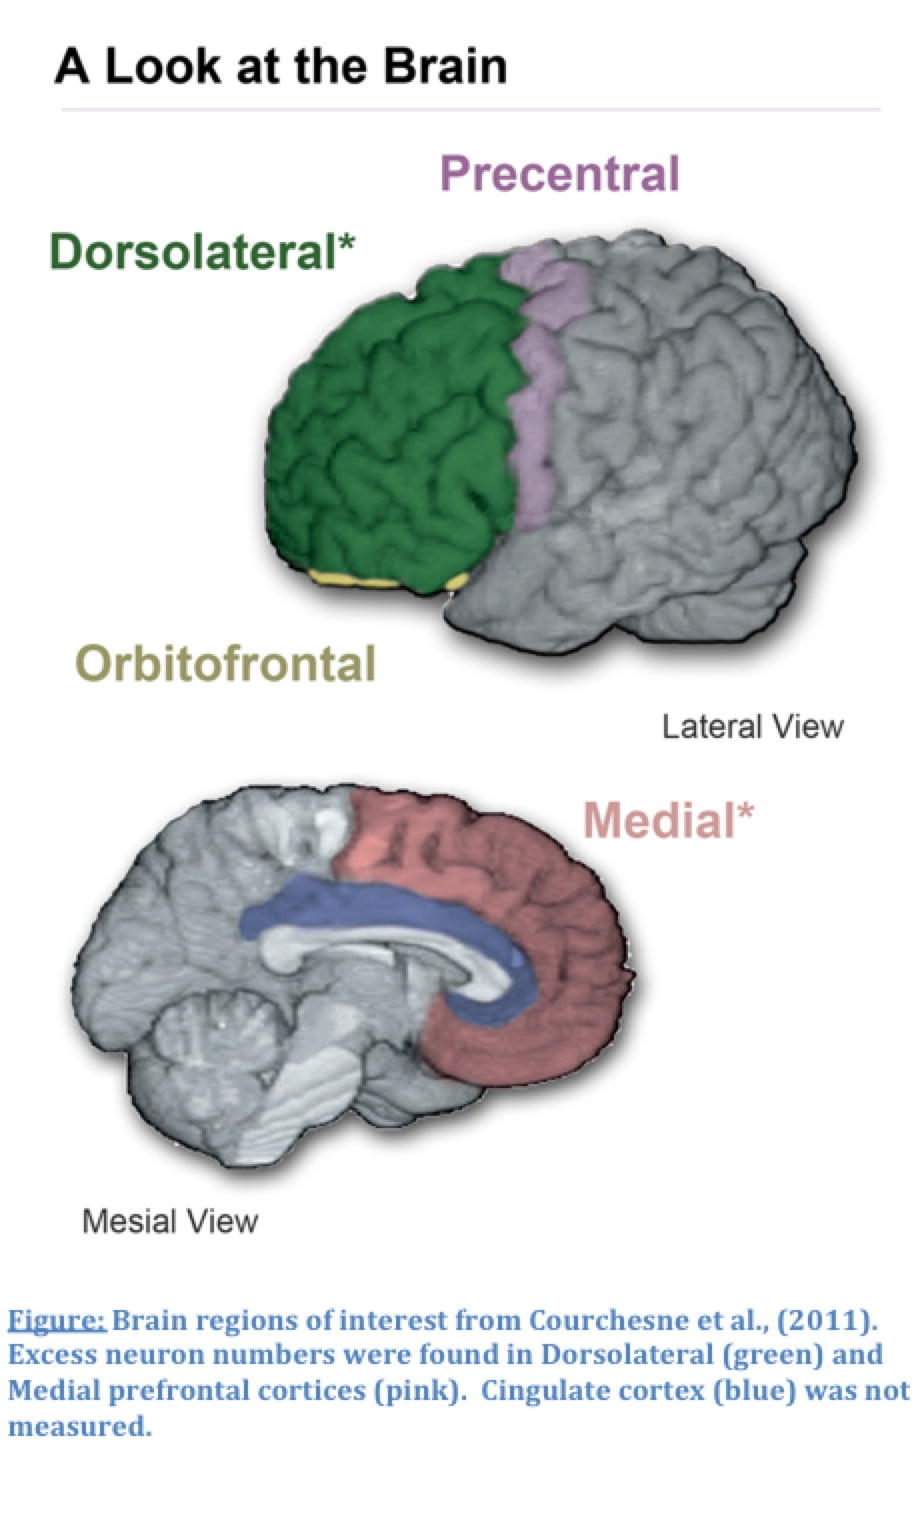 A Look at the Brain